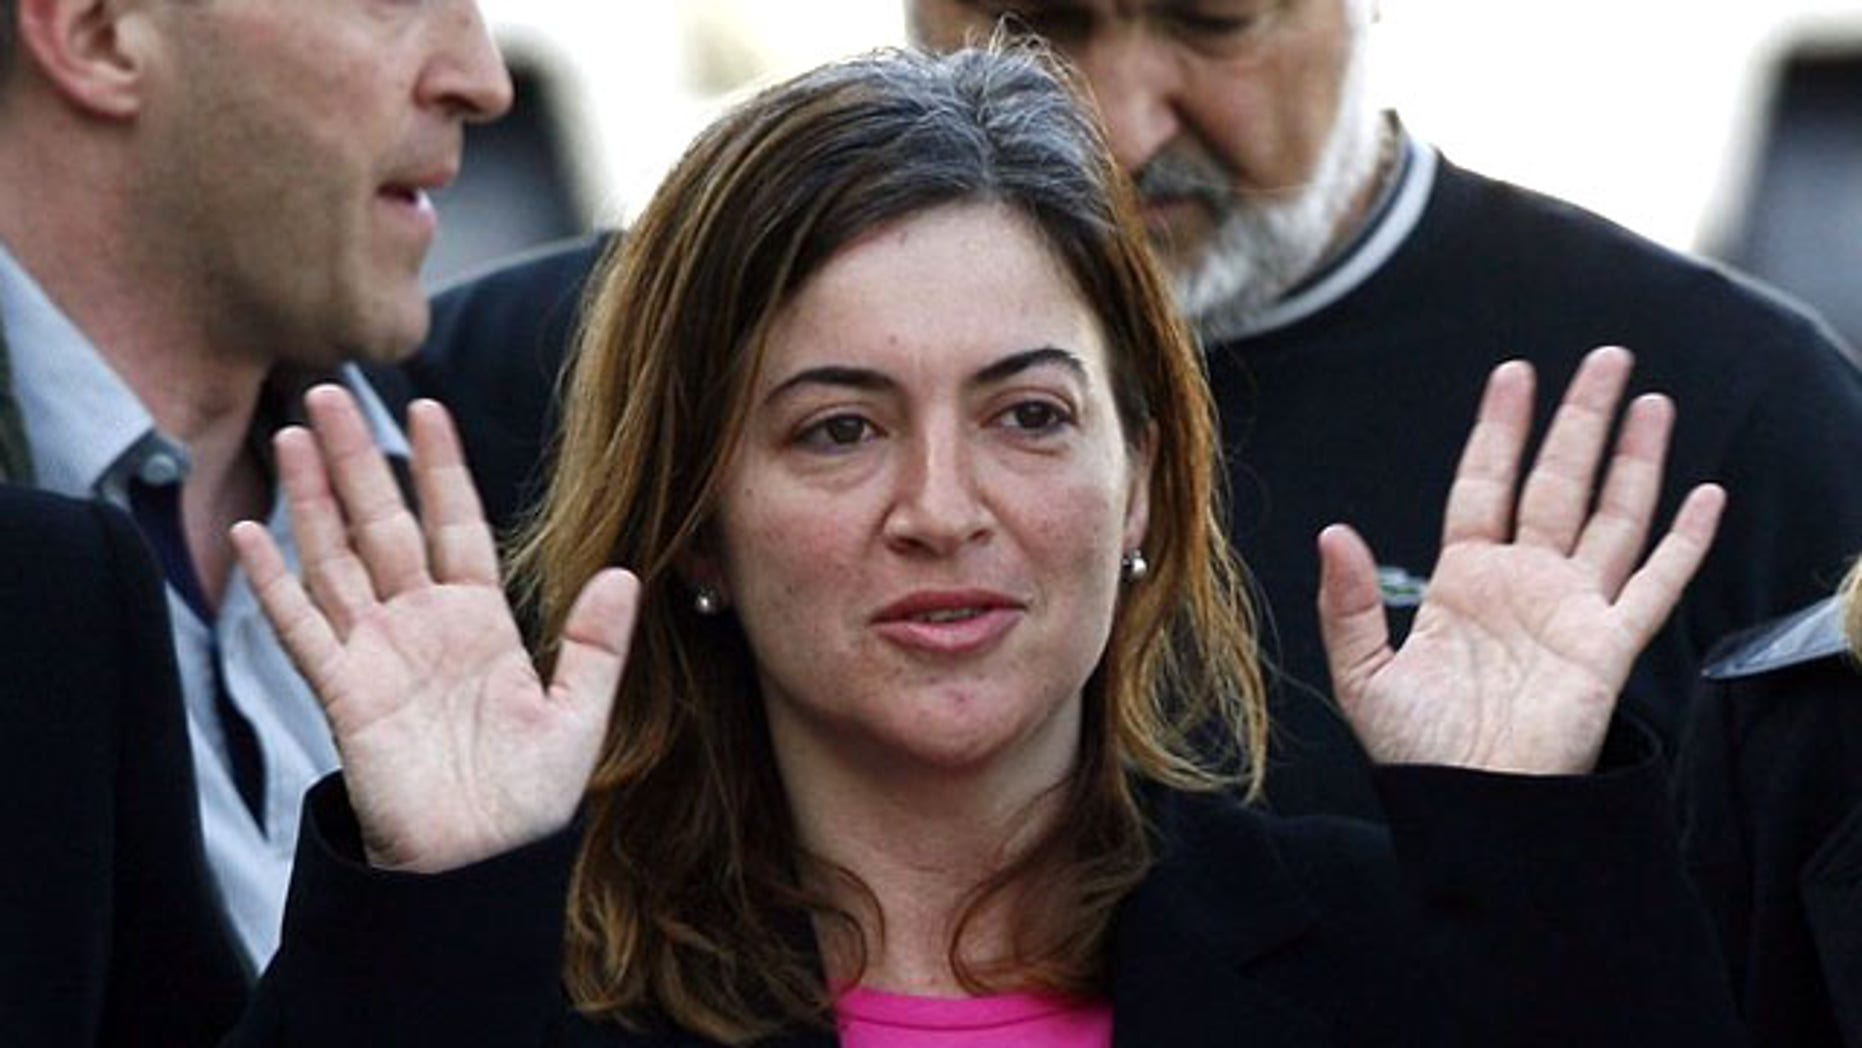 Alicia Gamez gestures during her arrival at Barcelona's airport March 10, 2010. Gamez, who was held hostage in Mali by a group believed to be al Qaeda's wing in North Africa, has been freed, the Spanish government said on Wednesday. Aid-worker Gamez was part of an aid convoy travelling to southern Senegal when she was seized in northern Mauritania in November along with two Spanish colleagues Albert Vilalta and Roque Pascual.